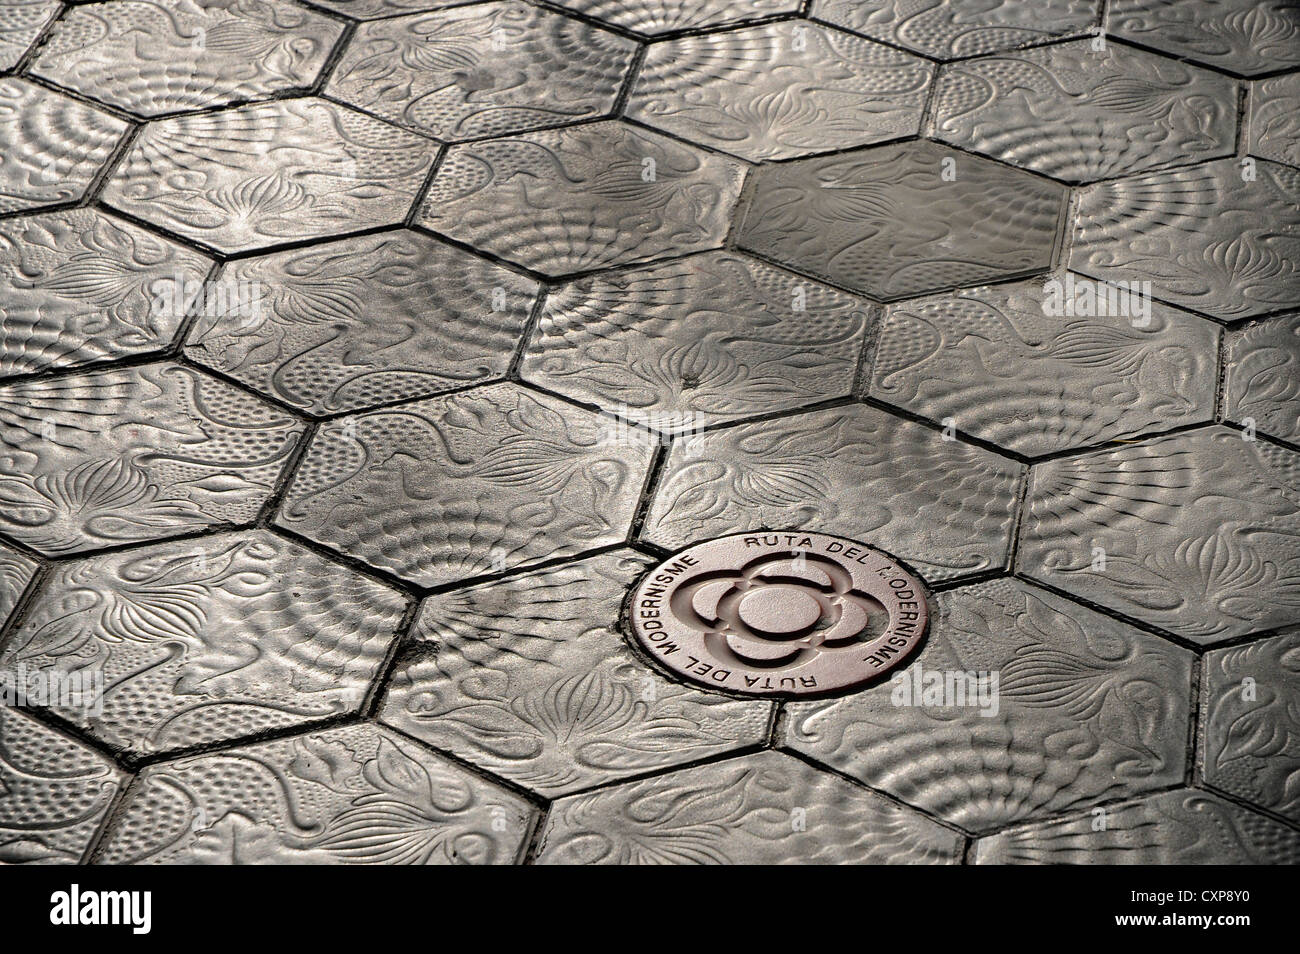 indication of the route of modernism on the pavers floor tiles hexagonal on the floor of  Paseo de Gracia in Barcelona - Stock Image